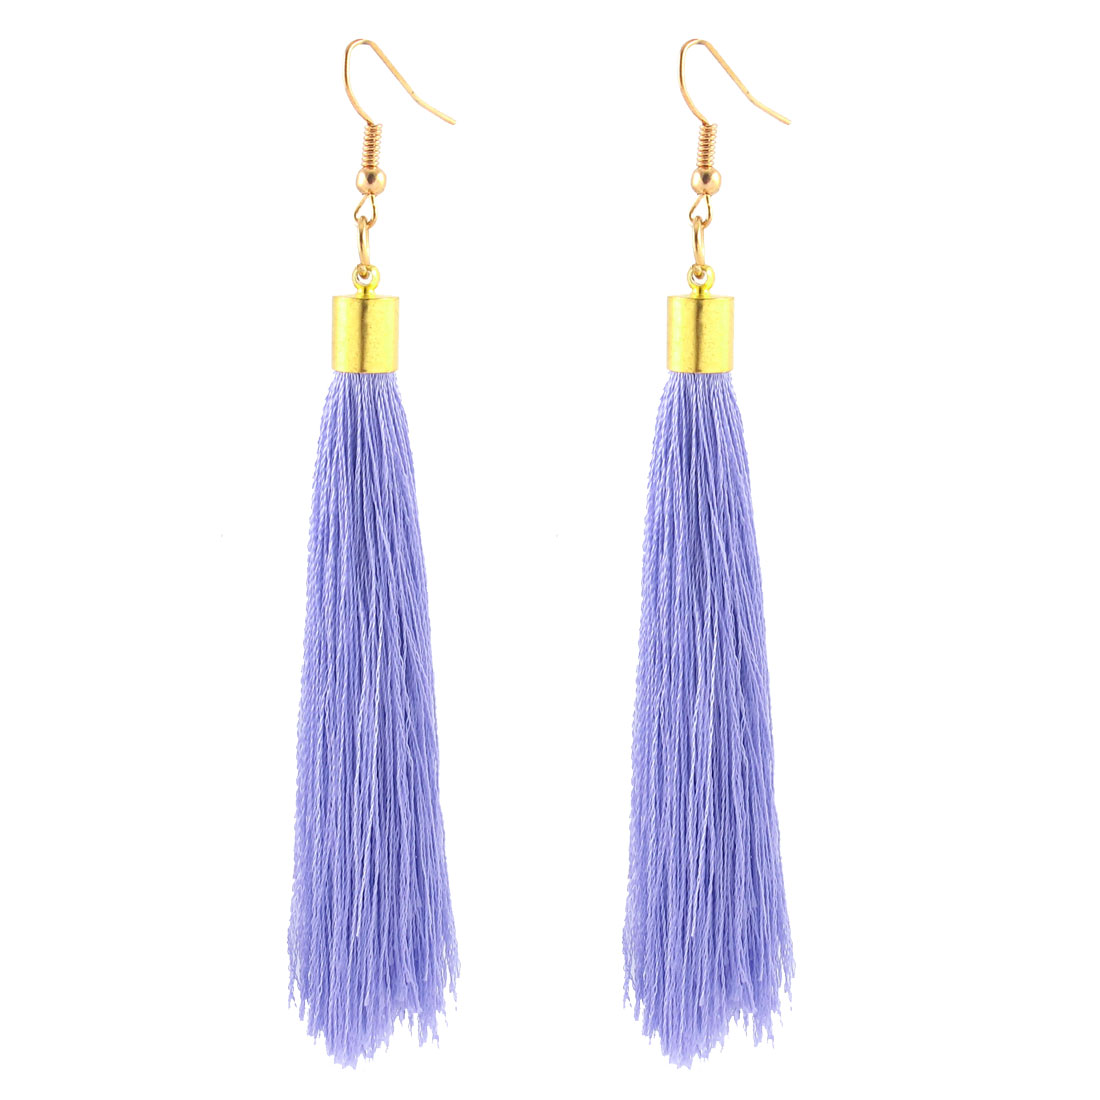 Mini Bead Adorn Fish Hook Decorative Tassel Dangle Earrings Pair Purple